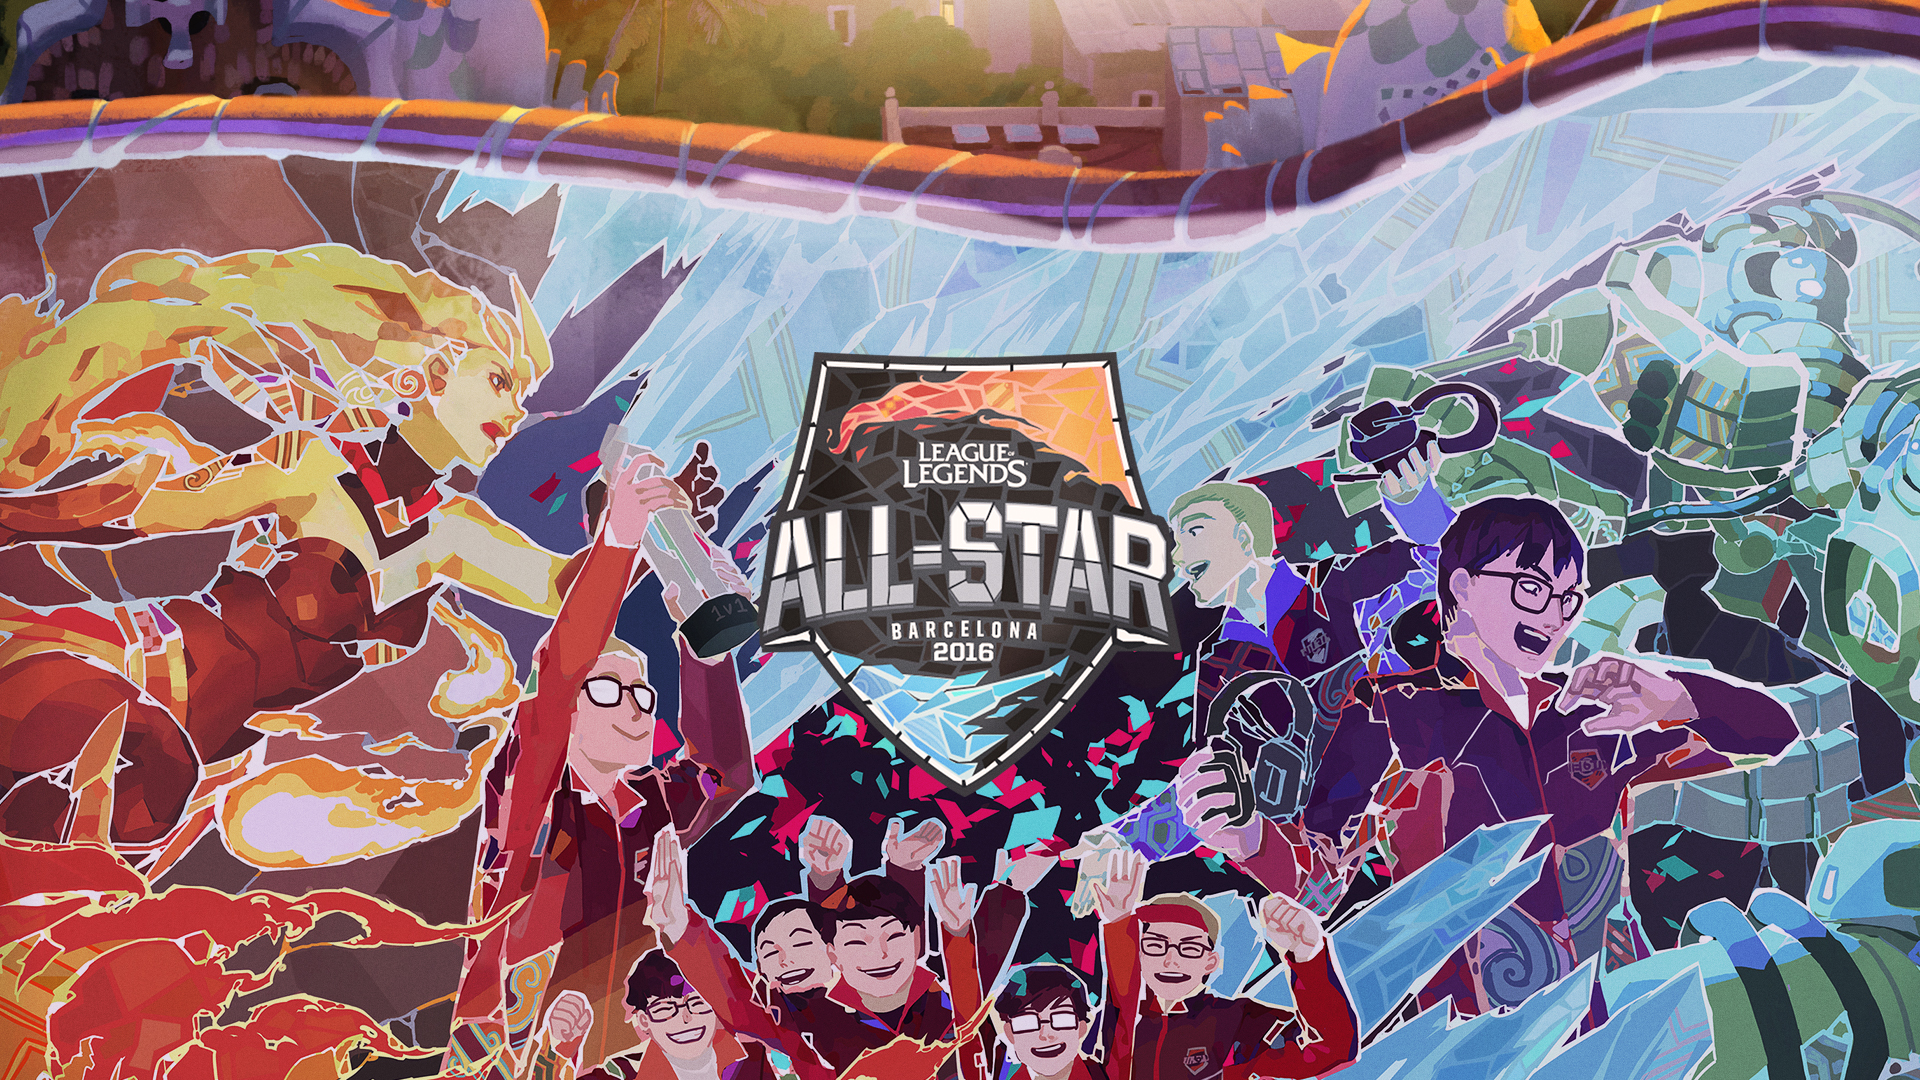 Download the All-Star wallpapers here and here